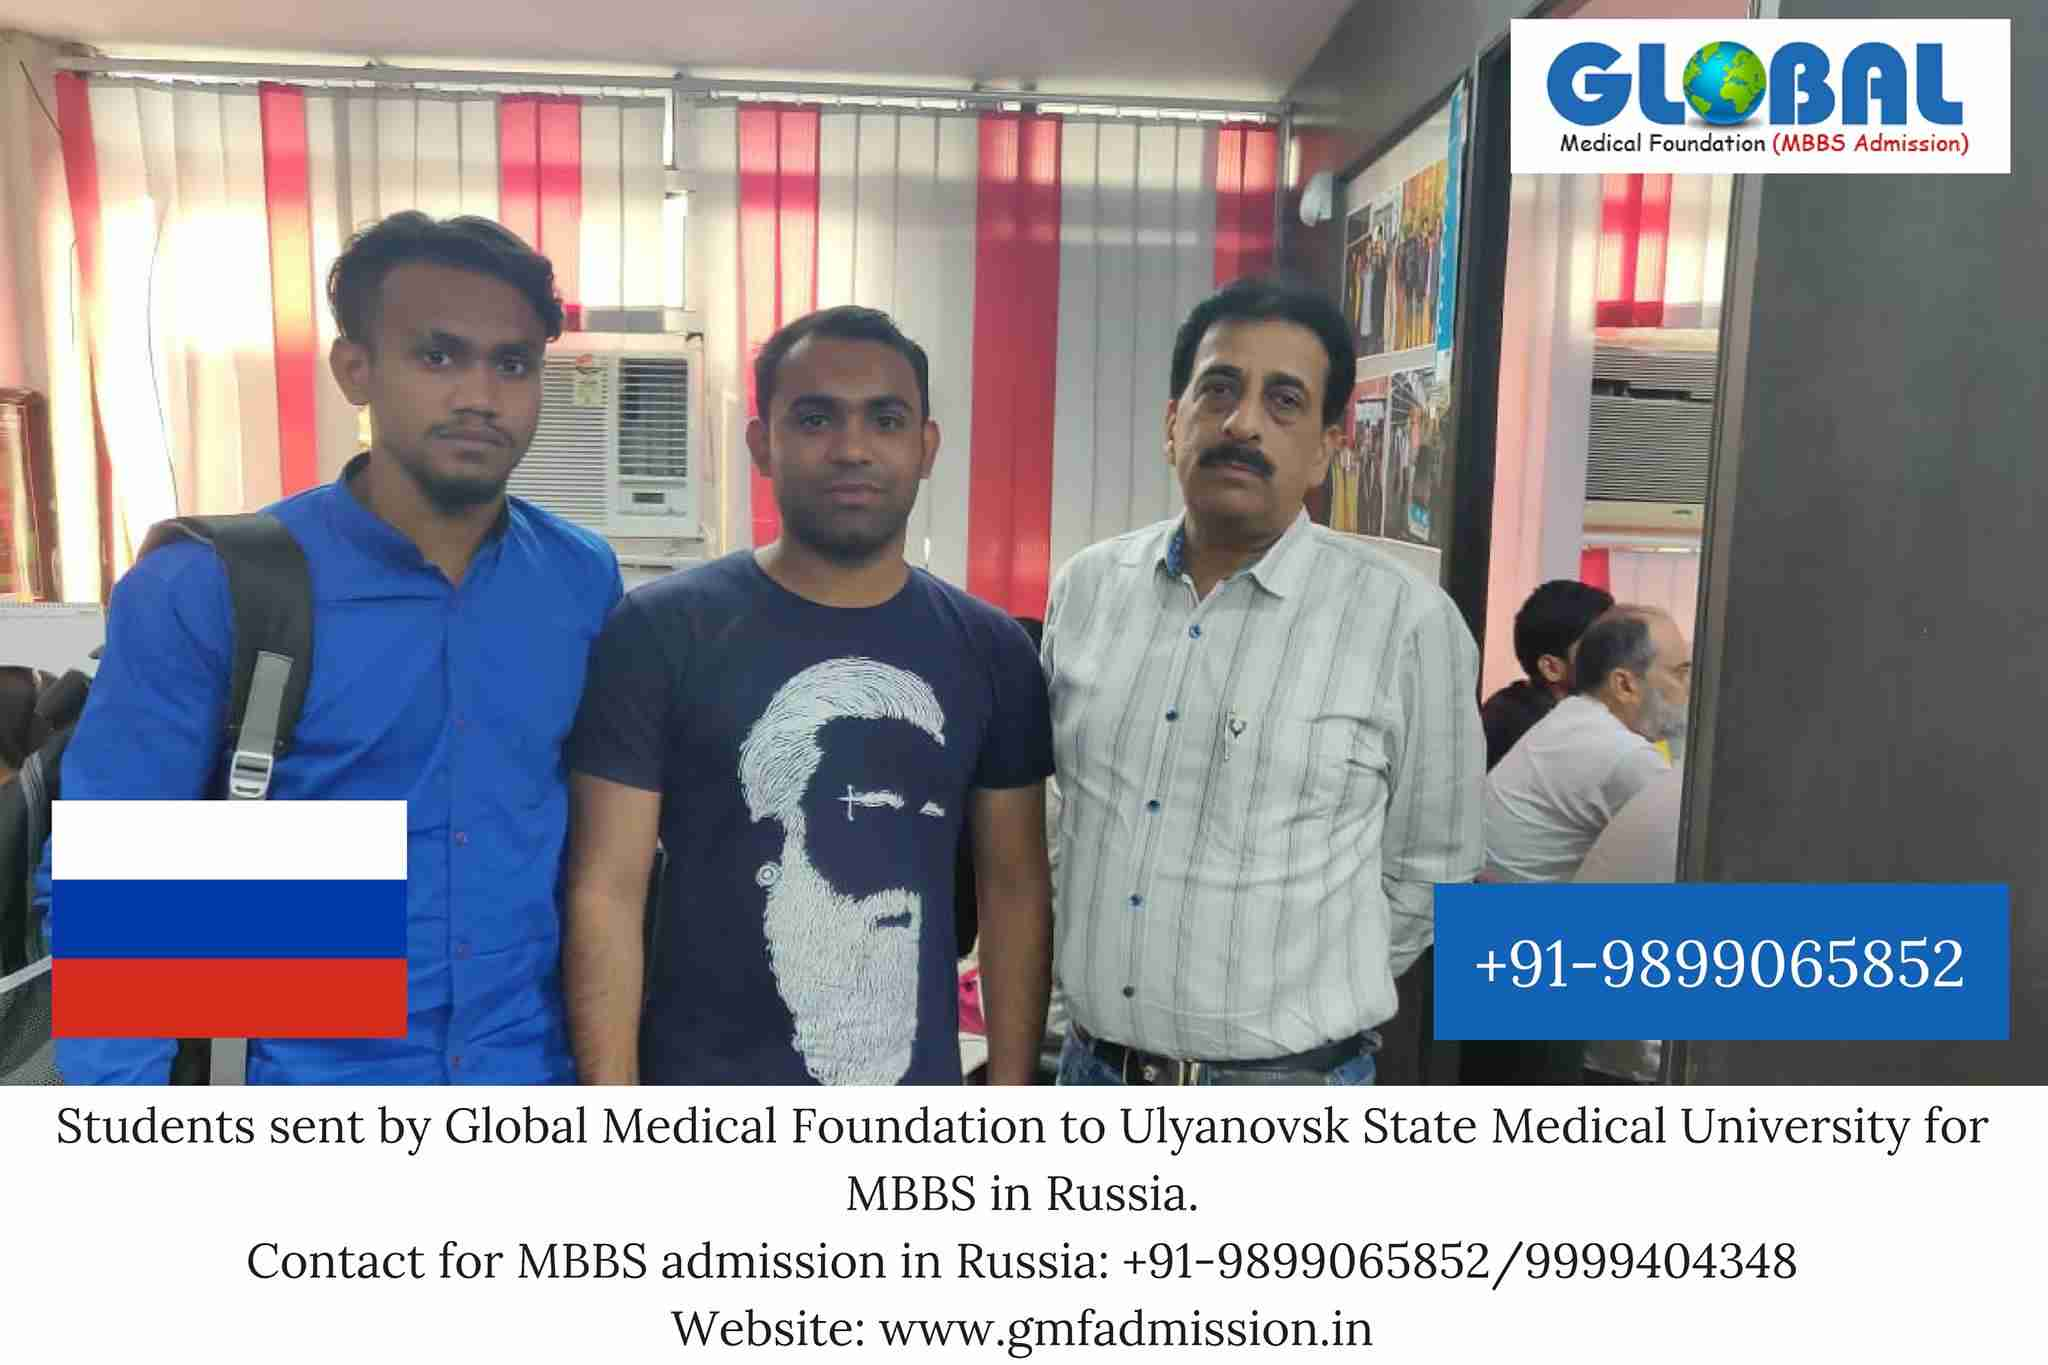 Student sent by Global Medical Foundation to Ulyanovsk State Medical University.